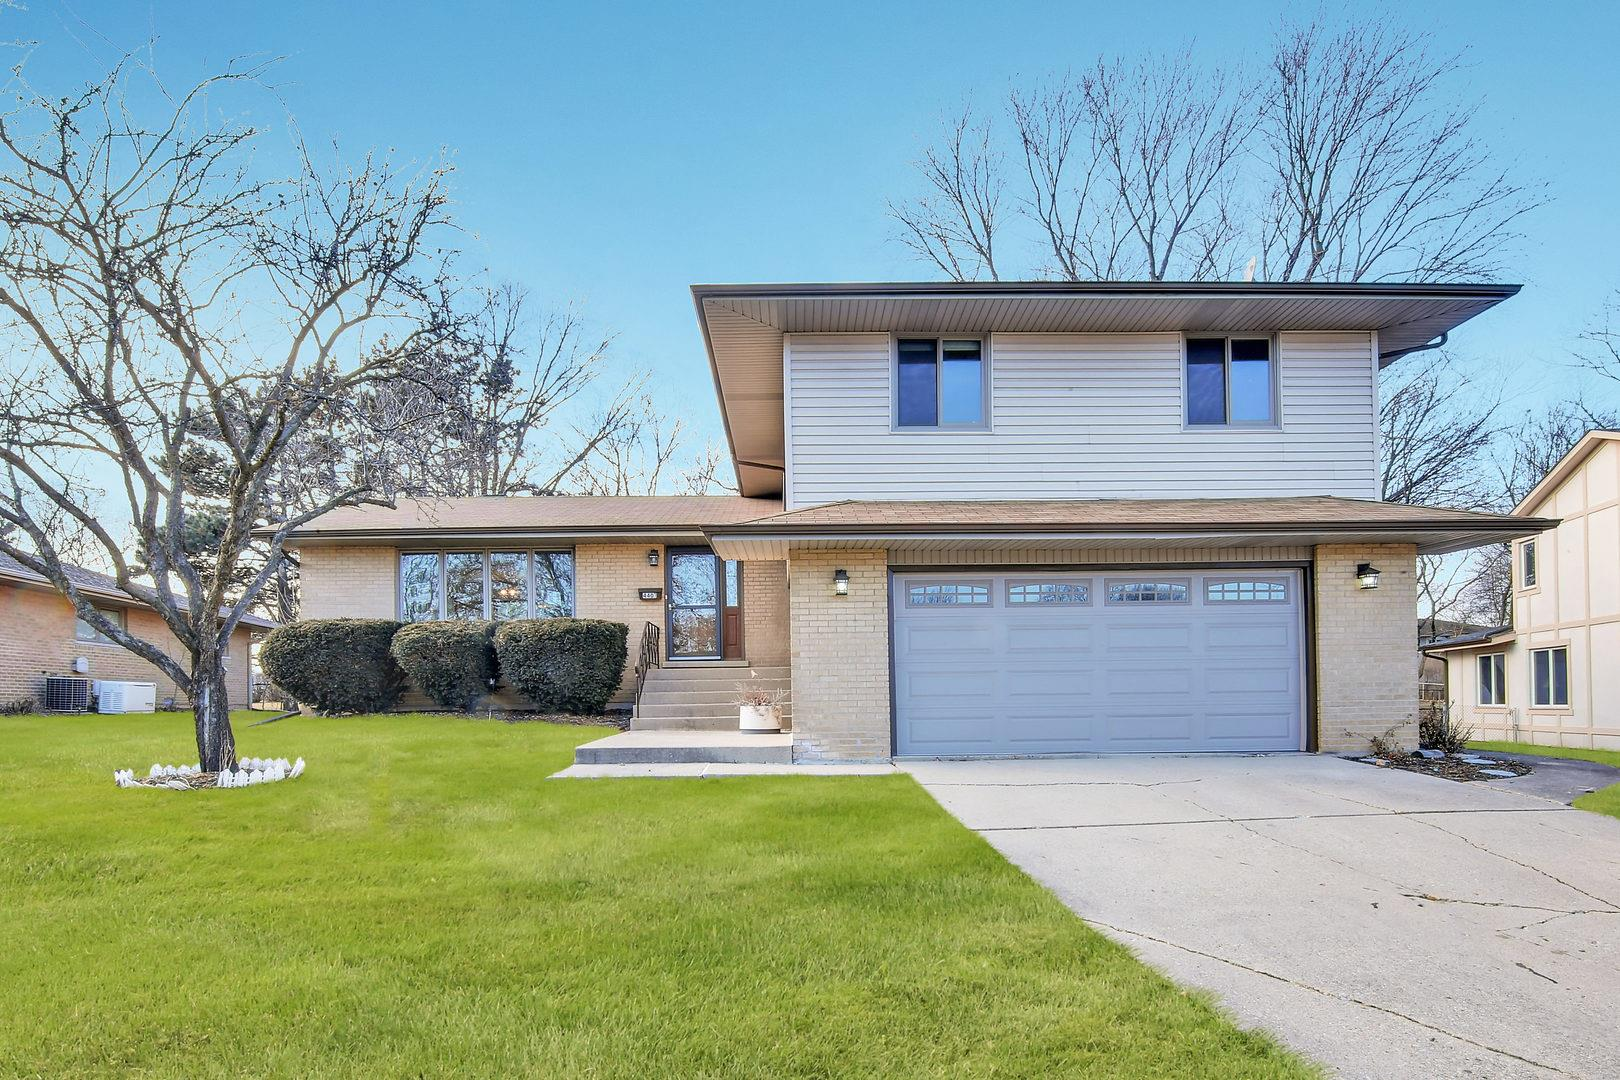 4407 Sycamore Lane, Rolling Meadows, IL 60008 - #: 10607981